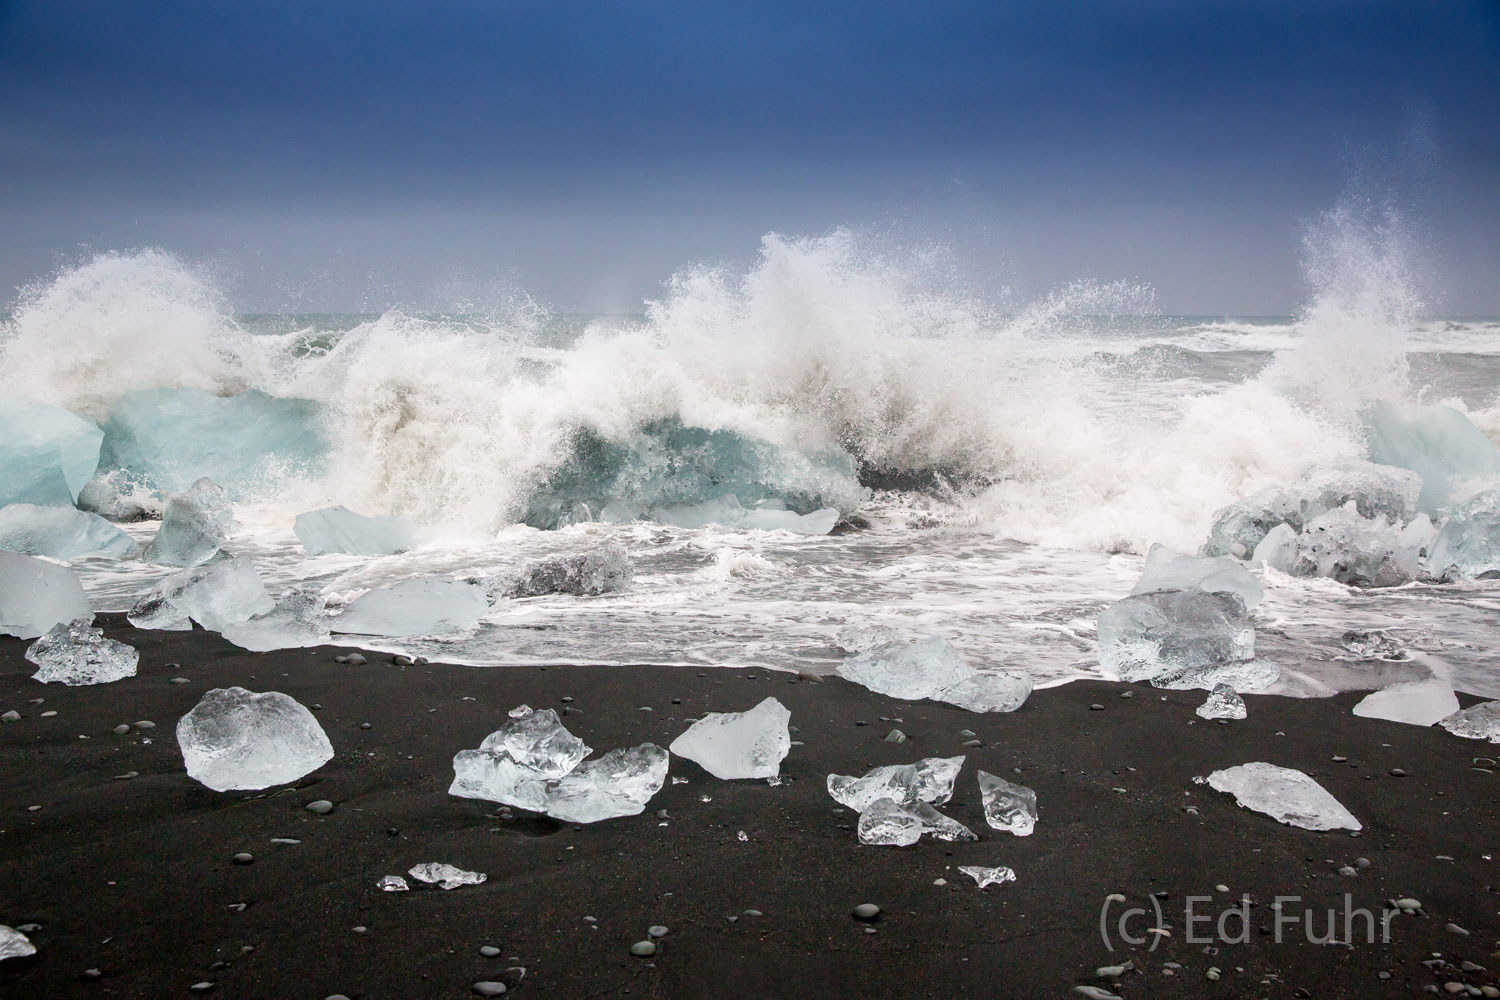 A powerful storm kicks up massive waves that pulverize these once mighty icebergs.